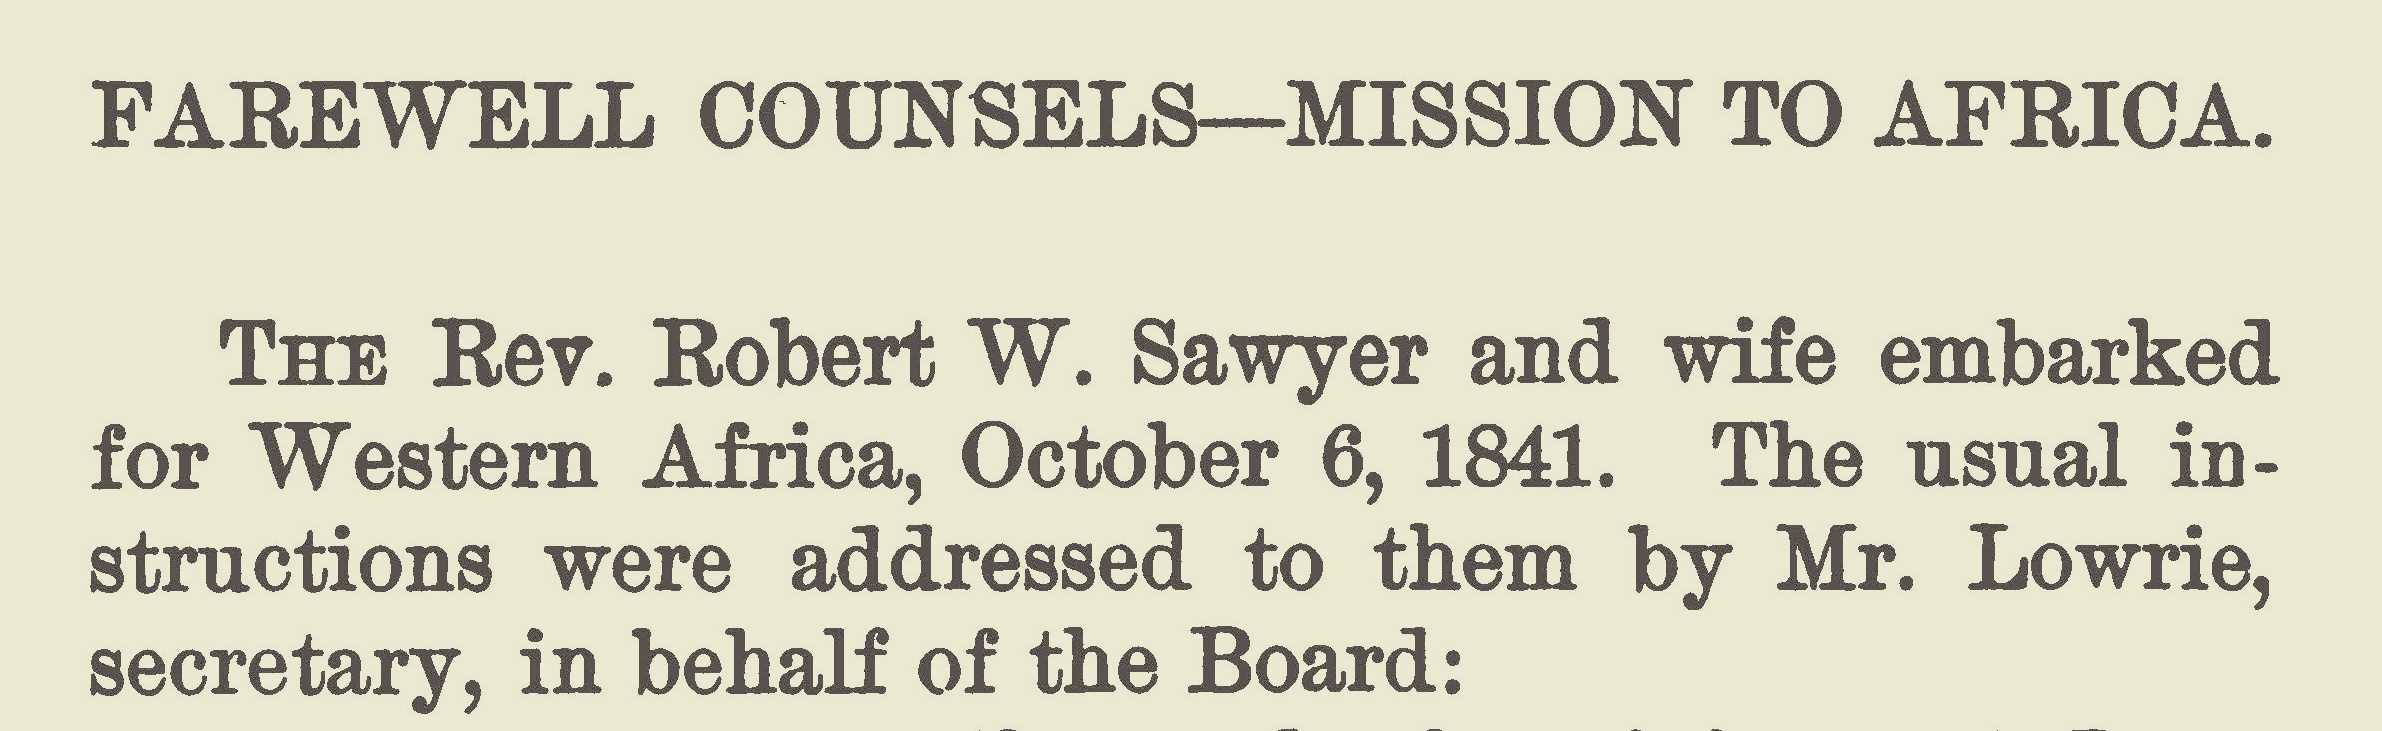 Lowrie, Walter, Farewell Counsels - Africa Title Page.jpg